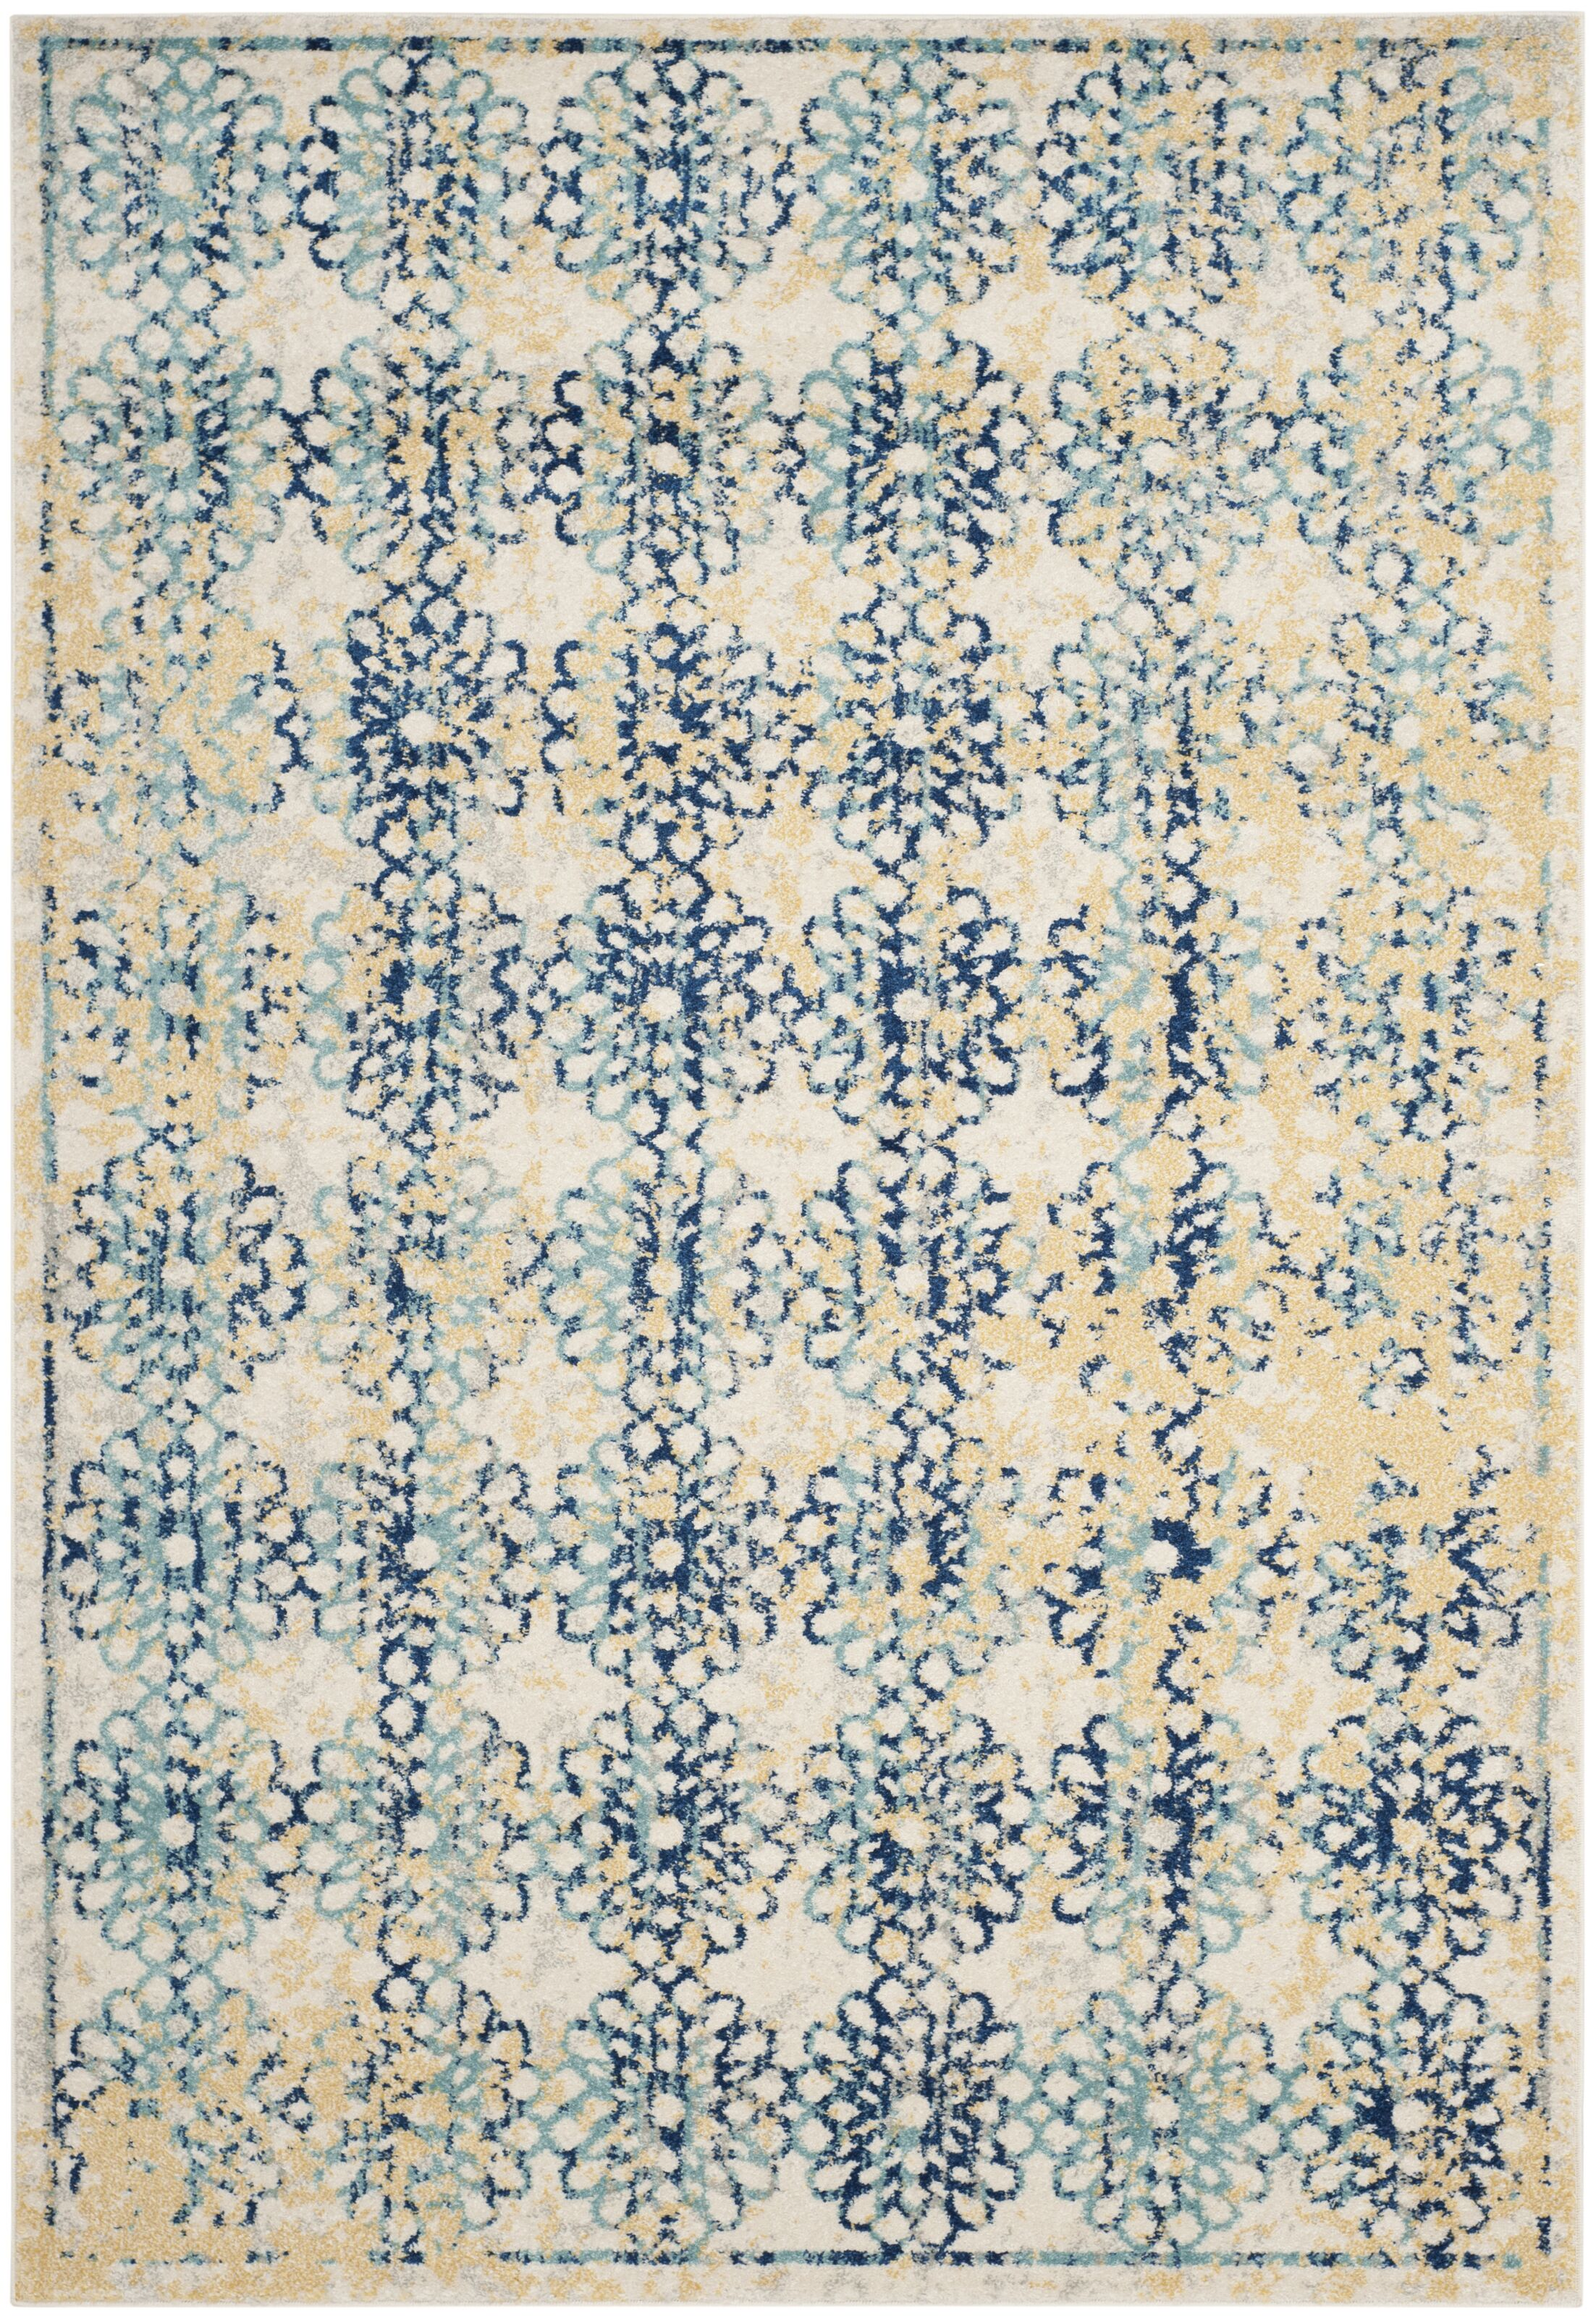 Elson Rectangle Ivory/Blue Area Rug Rug Size: Rectangle 10' x 14'